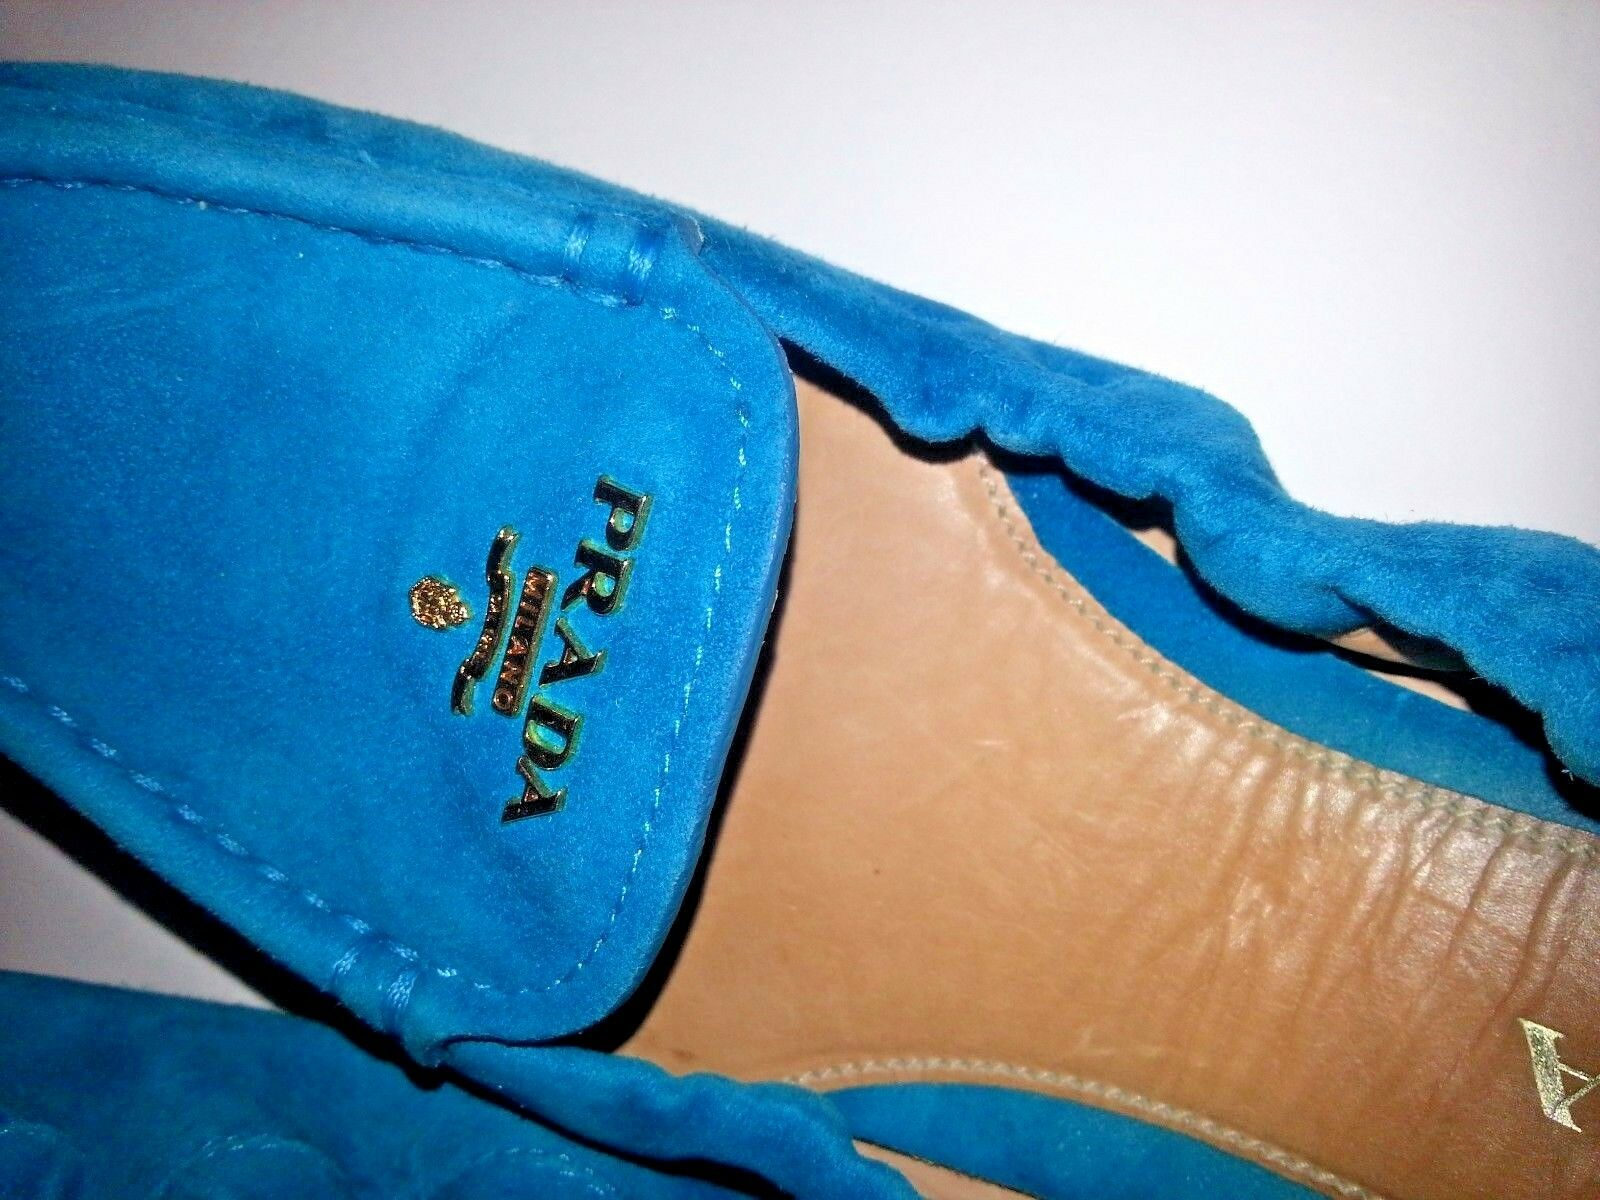 Prada Women's Logo Suede Driving Moccasin Loafer Flat Flat Flat shoes Drivers bluee 38 8 US 388095